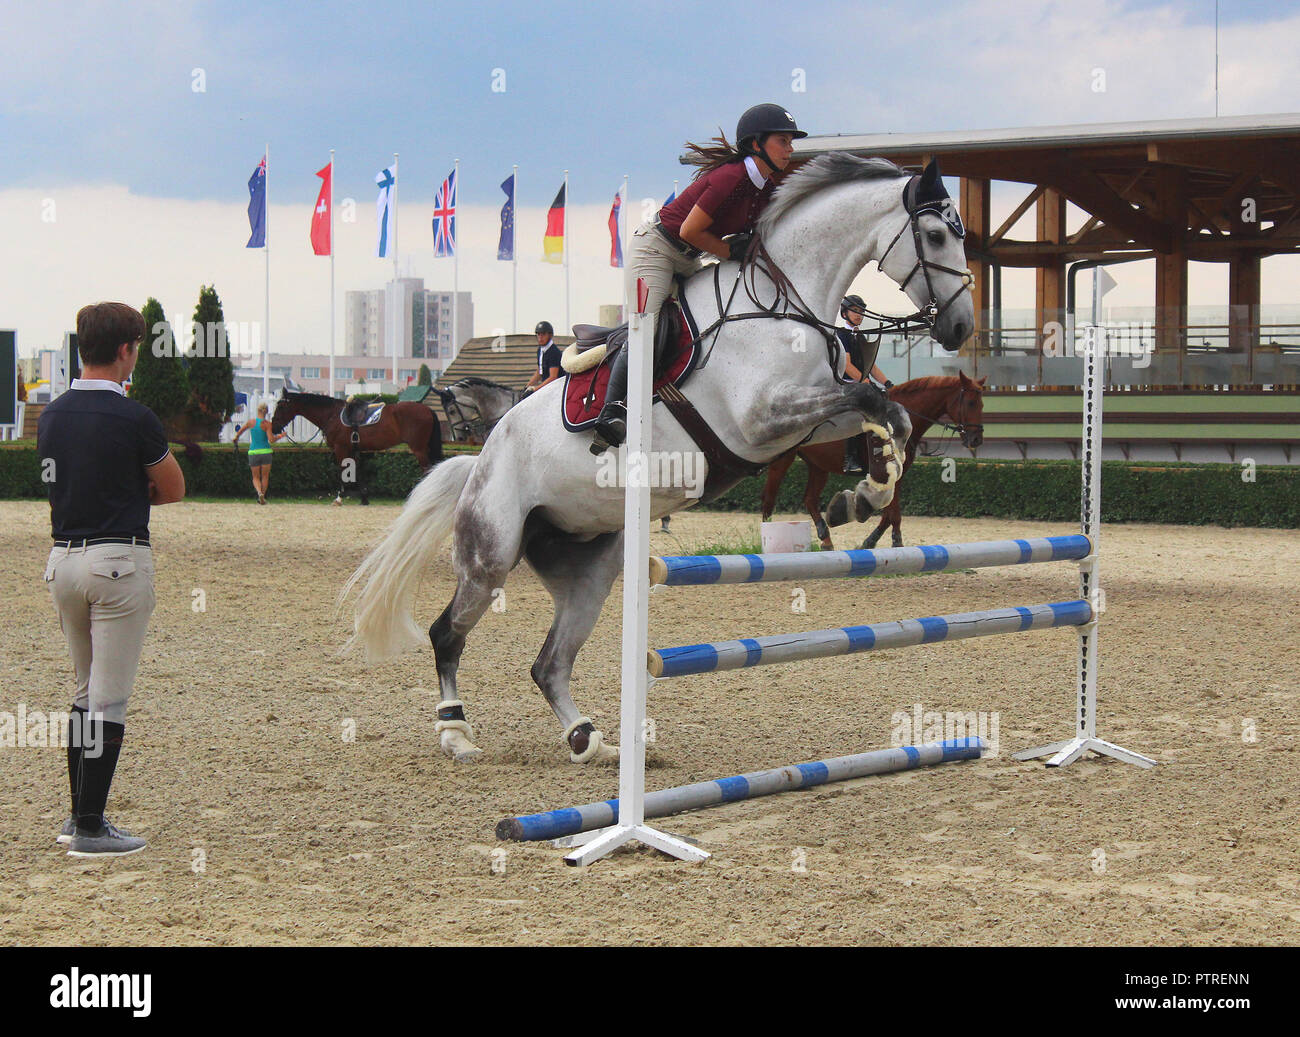 Show Jumping Training Female Rider On A Beautiful White Horse Jumping Through A Barrier Stock Photo Alamy